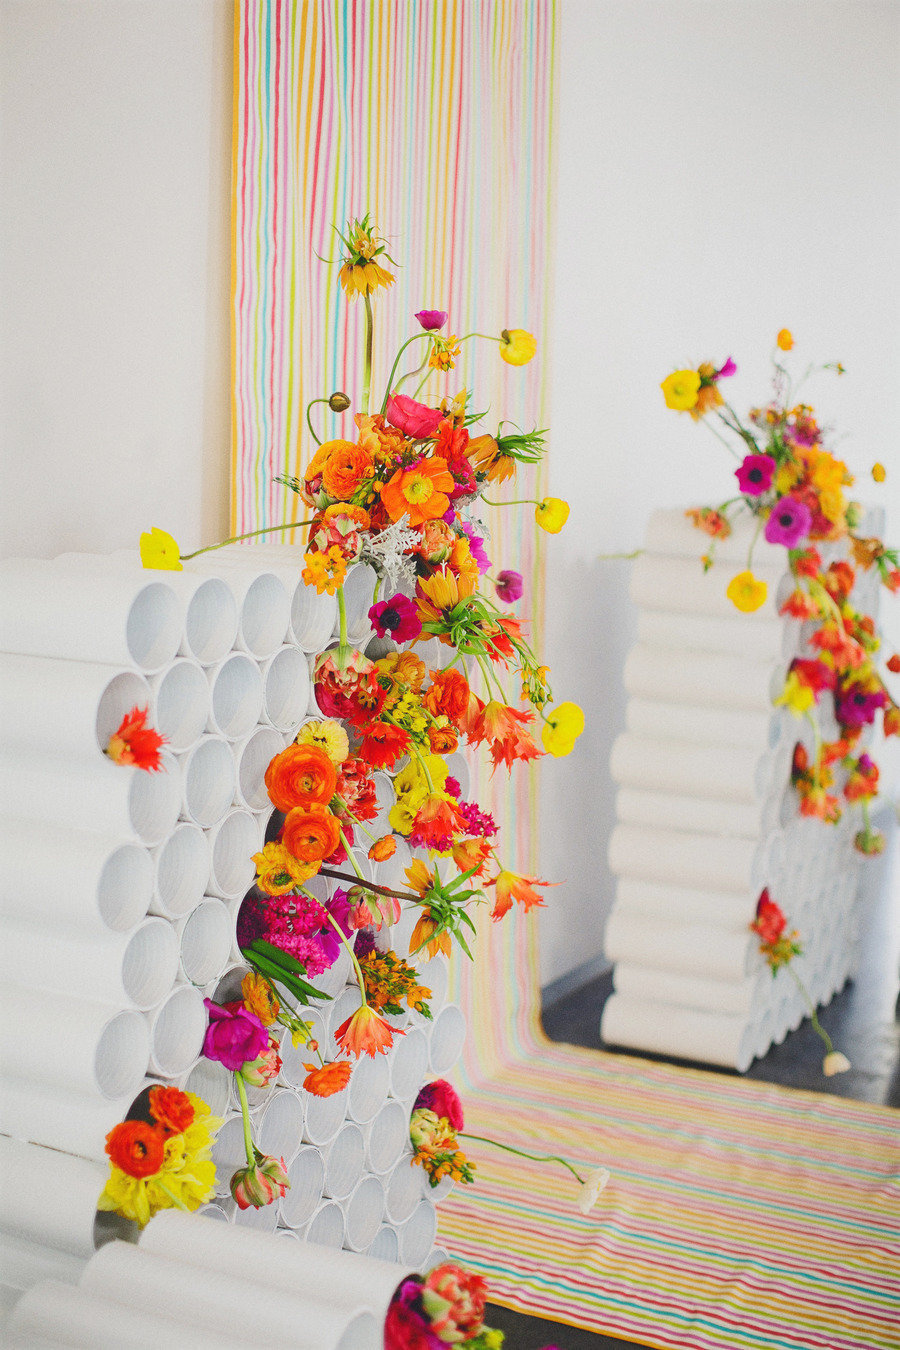 Rainbow-neon-wedding-backdrop-with-bright-bold-flowers.full